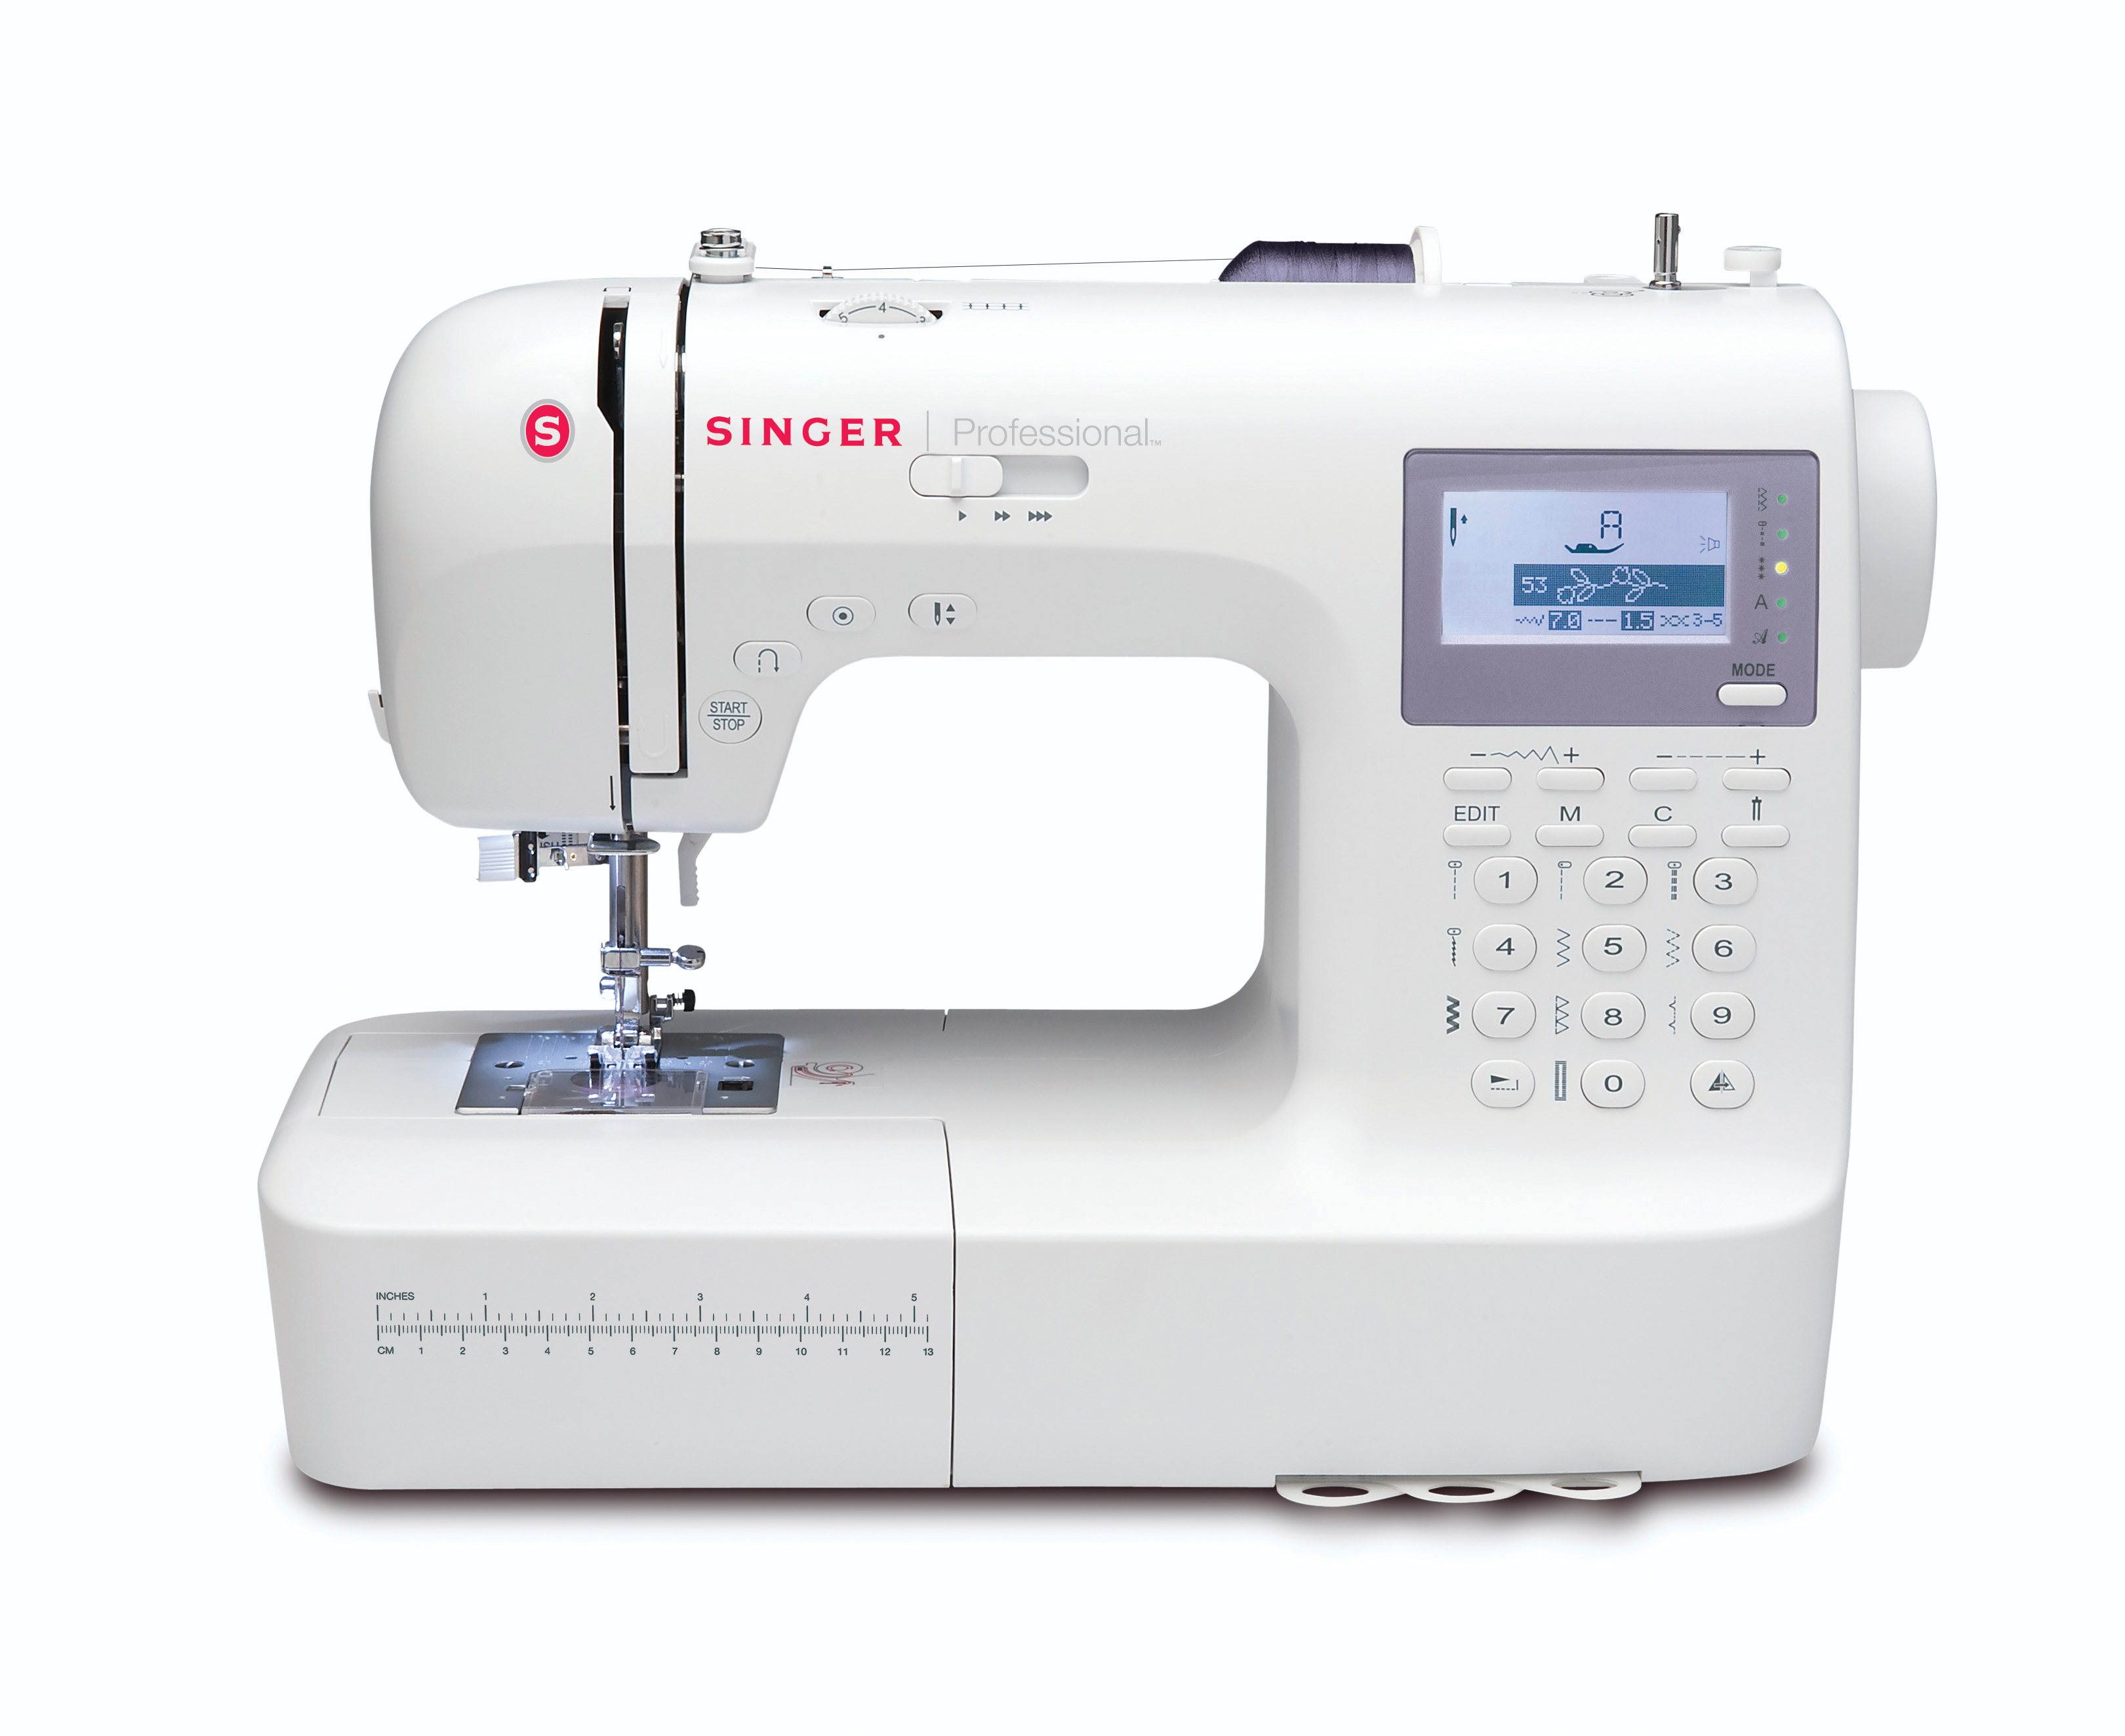 Singer Professional 9100 Sewing Machine 10 Ct Printable Threading Guide Easy Crafts